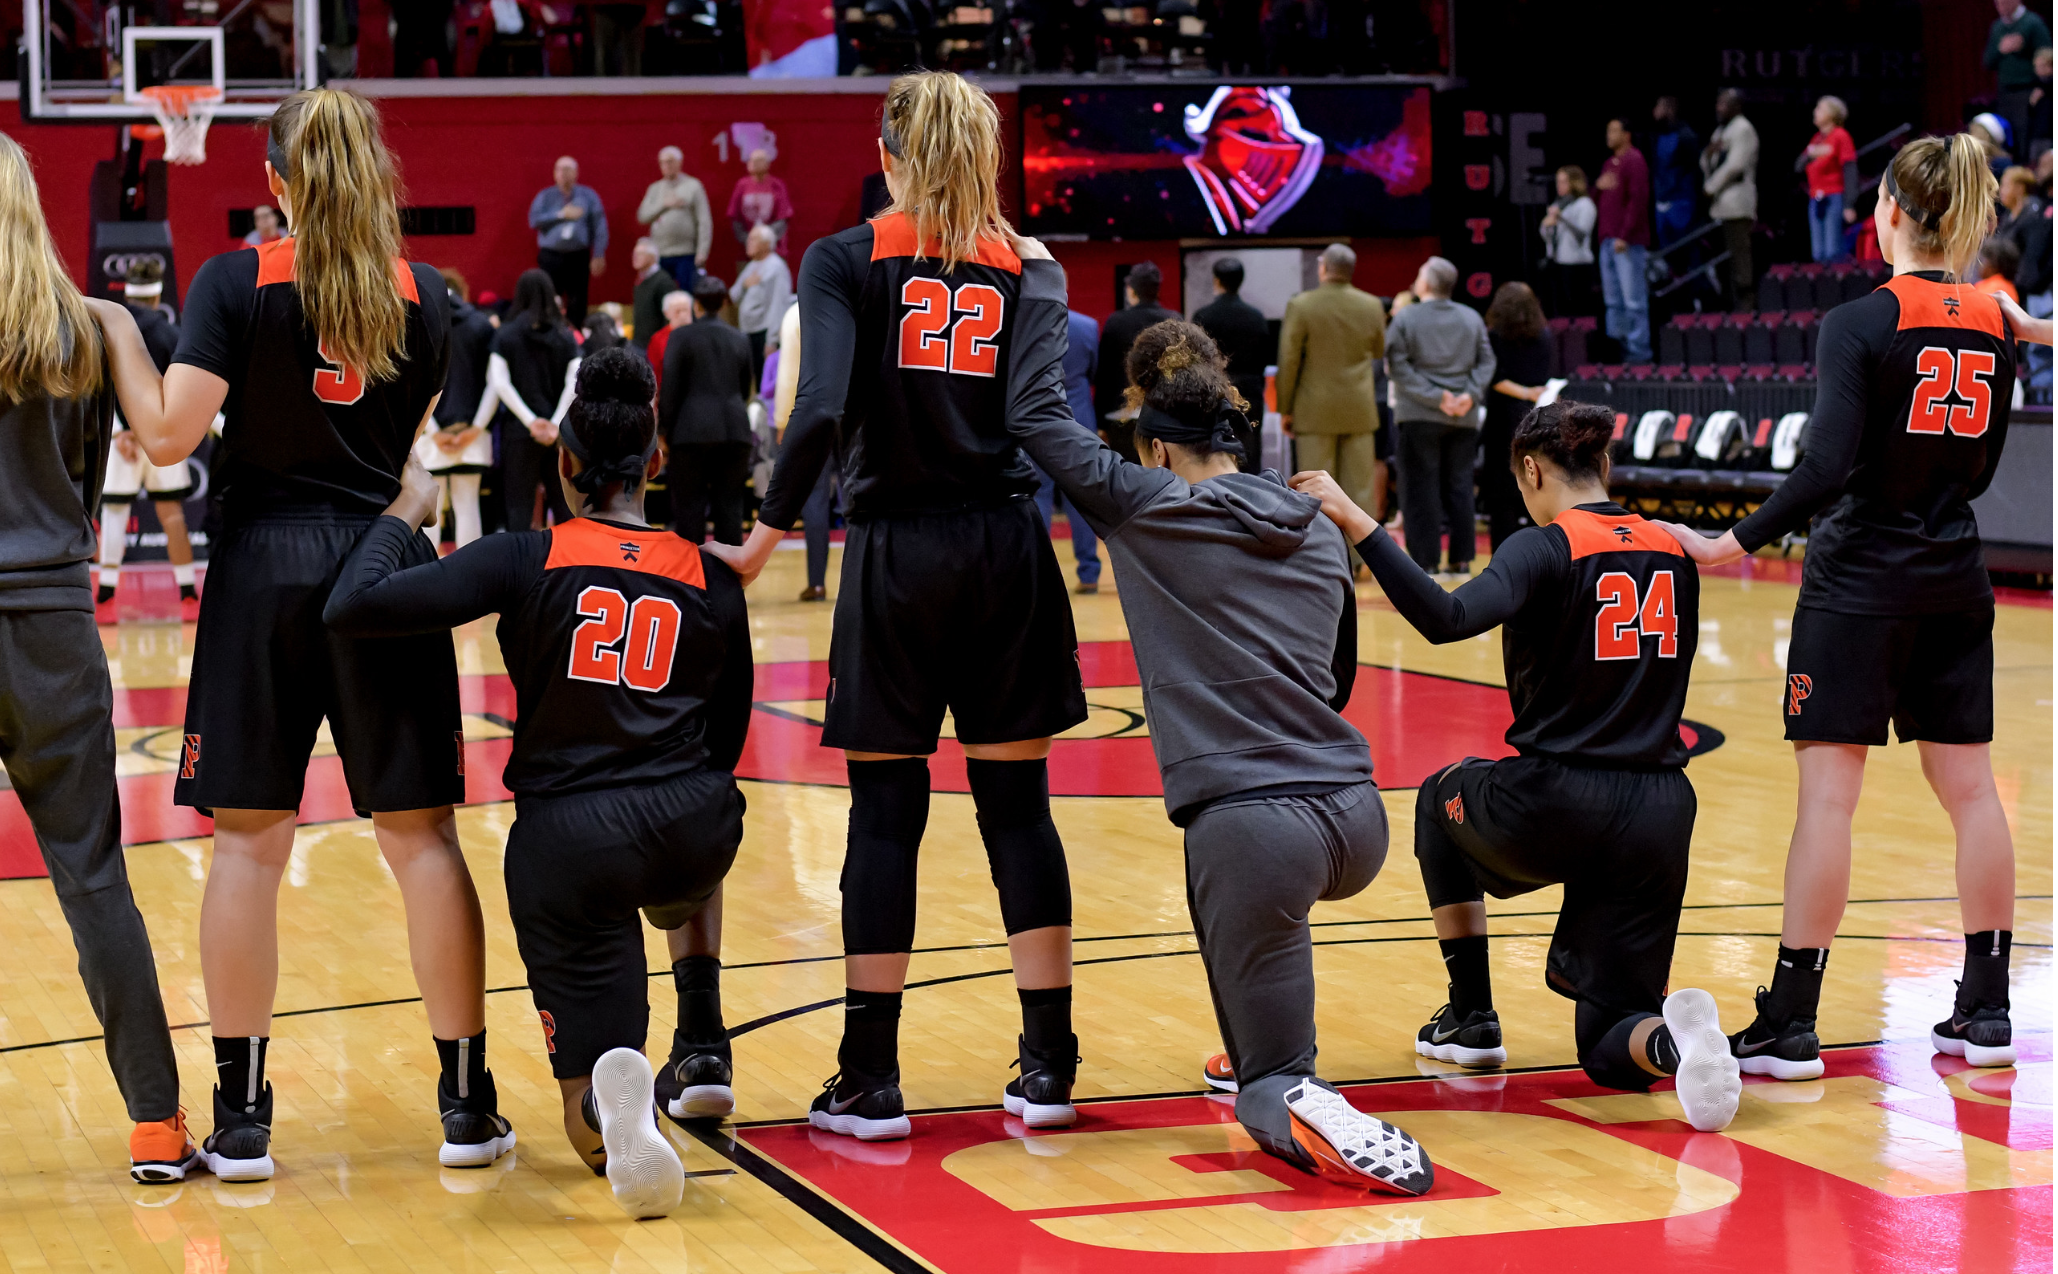 Sydney Jordan (No. 20) takes a knee as well as Qalea Ismail (jumpsuit) and Kenya Holland (No. 24) in a game against Rutgers University.  (Photo by and reprinted with permission from Joel Plummer)